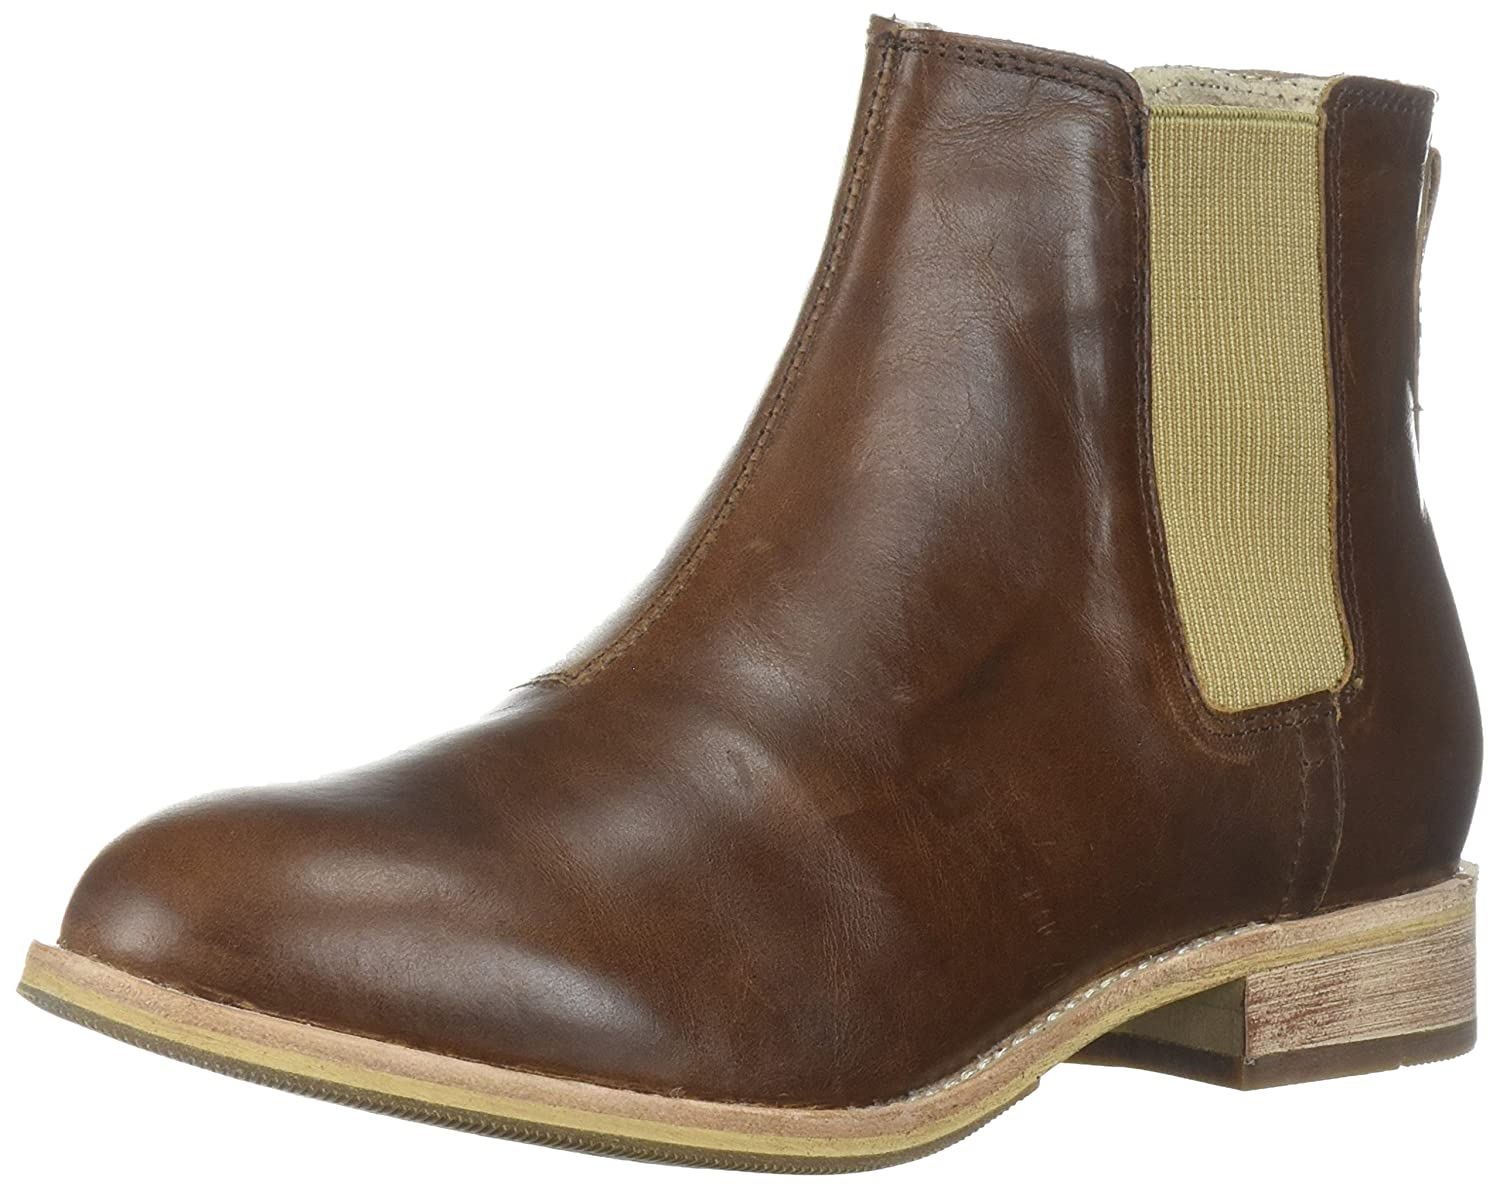 Caterpillar Women's Matilda Leather Chelsea Ankle Boot B01MSYT9L8 7 B(M) US|Brown Sugar